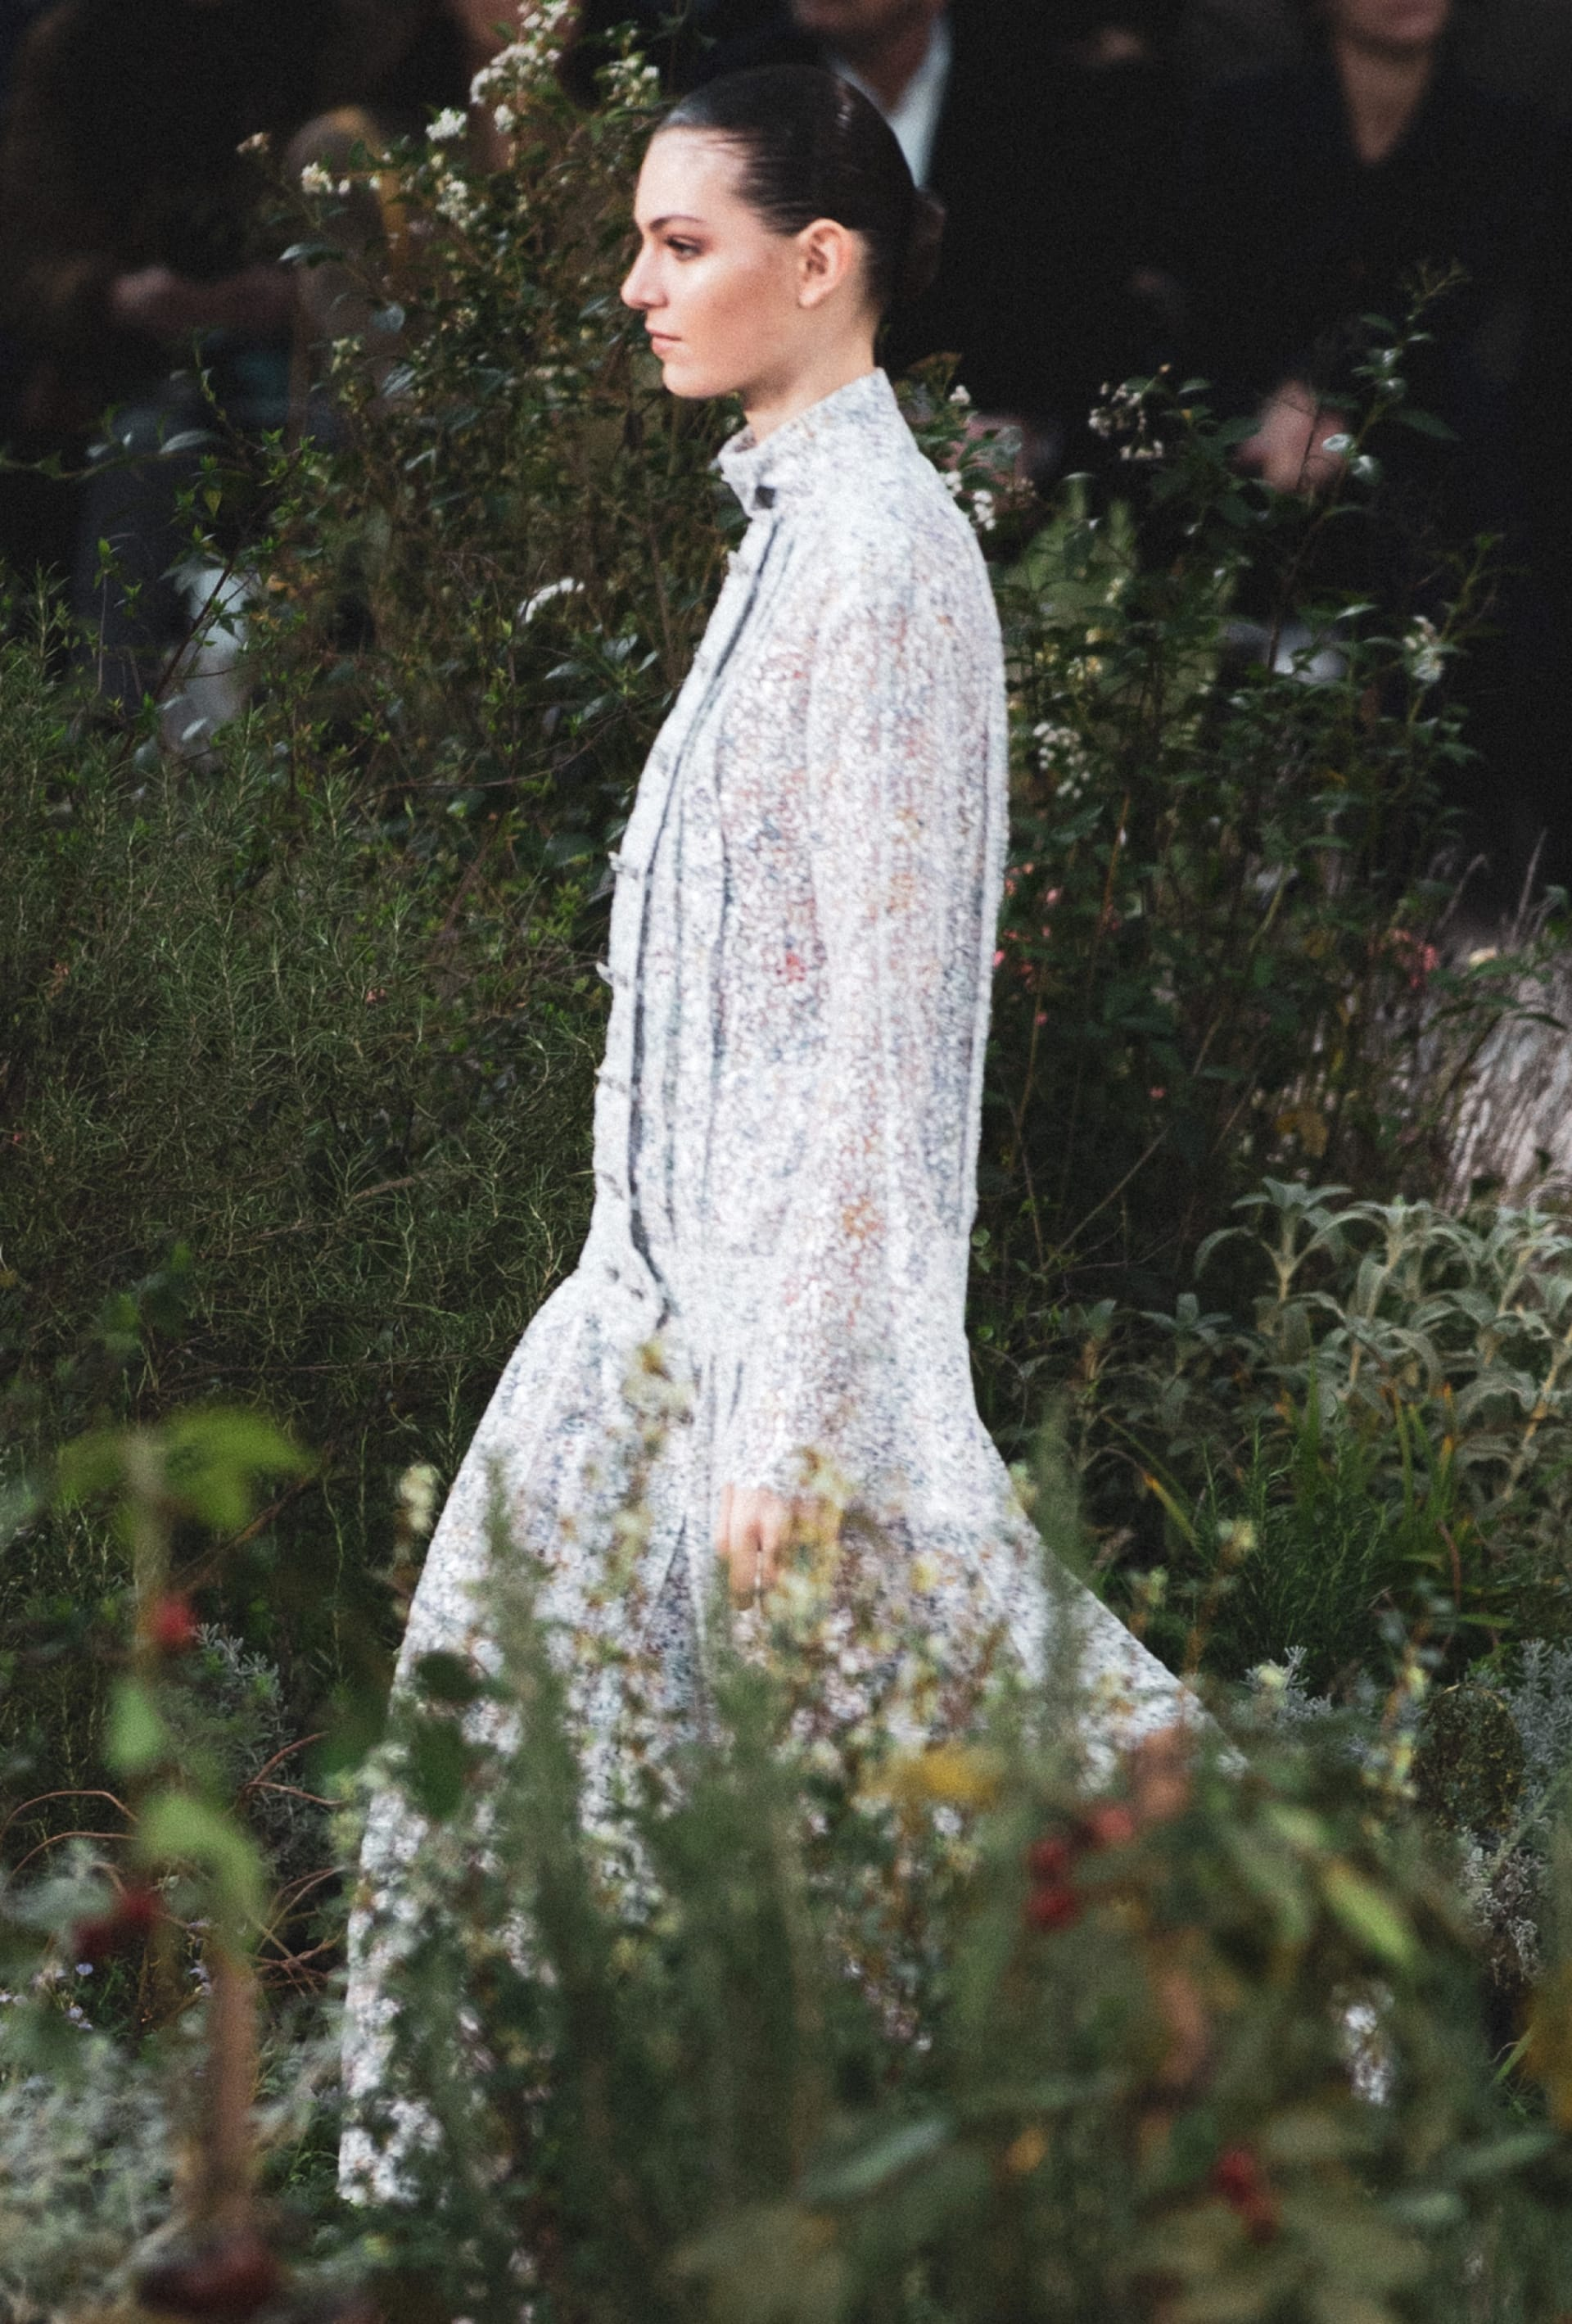 View 4 - Look 25 - Spring-Summer 2020 Haute Couture - see full sized version